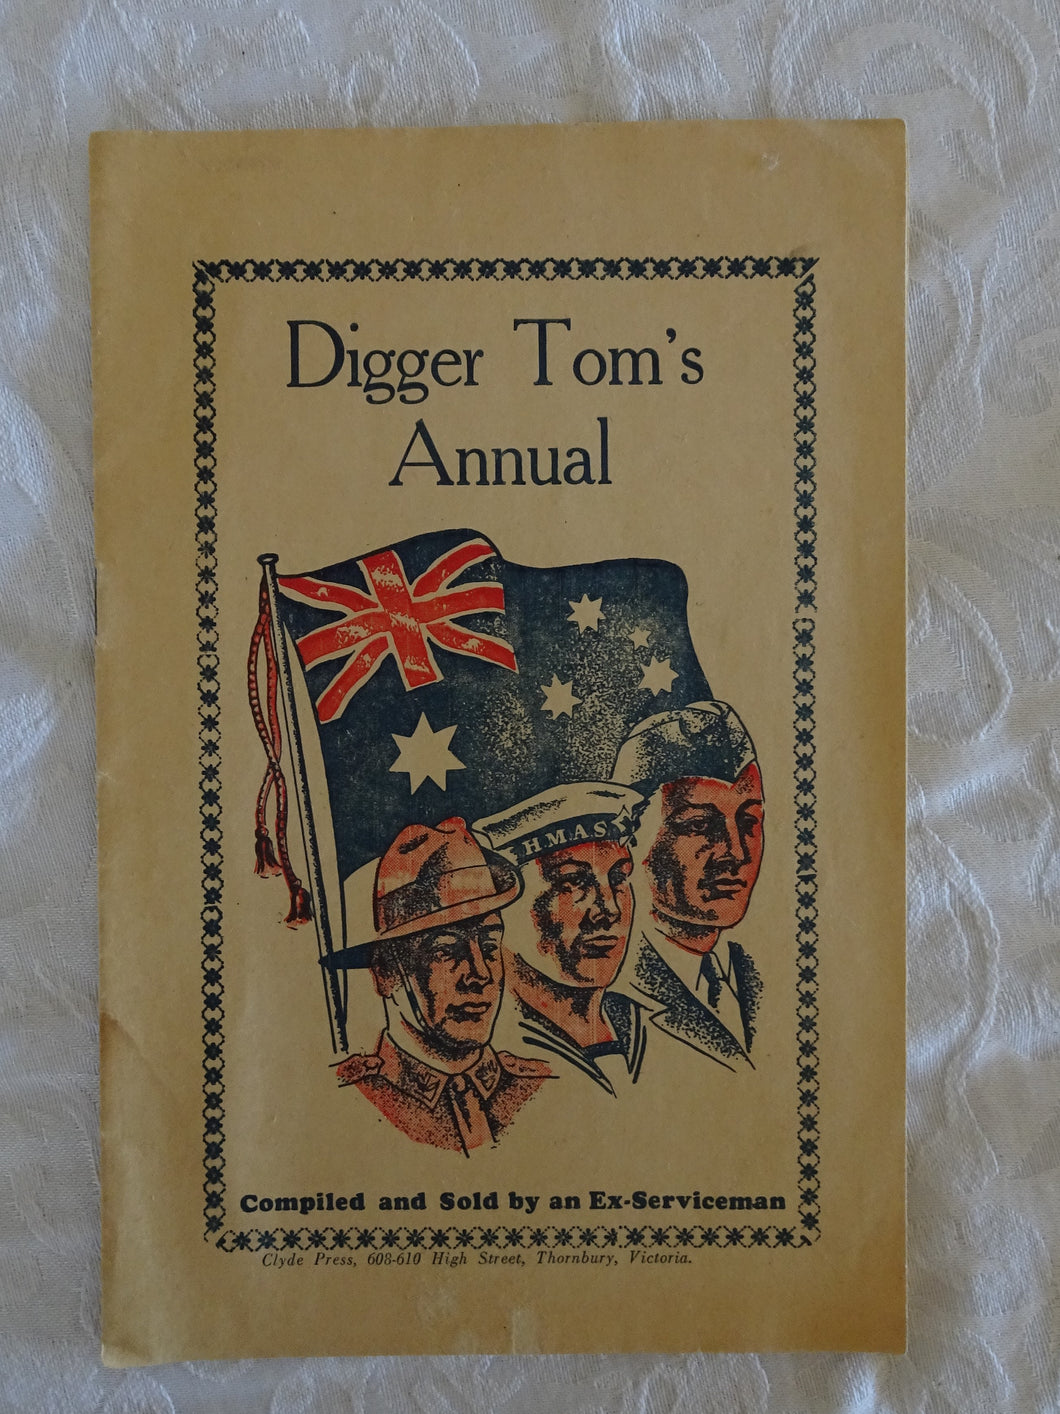 Digger Tom's Annual by Tom Bonola